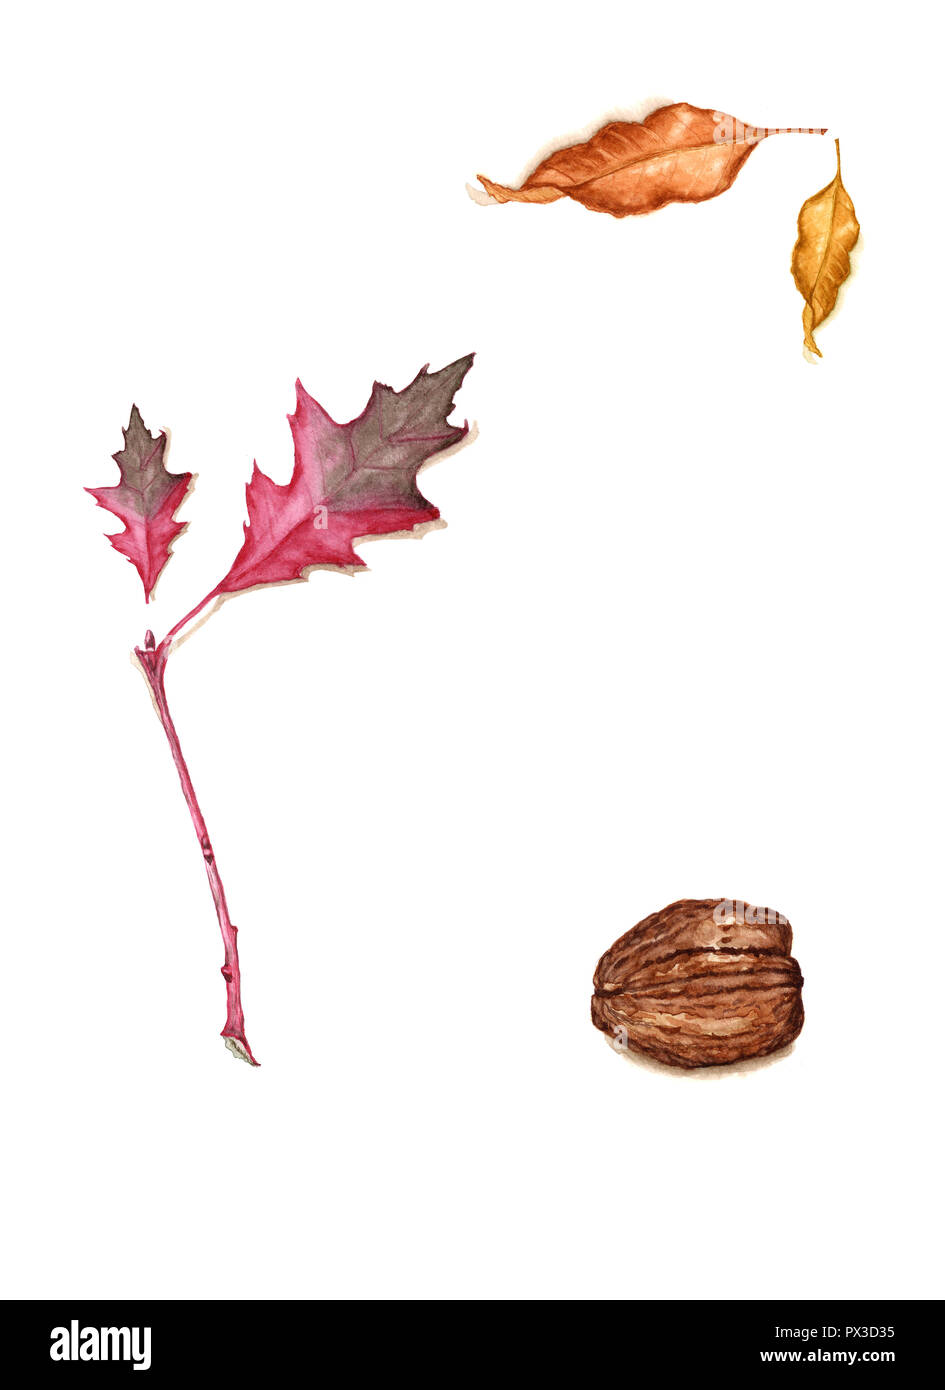 Hand drawn watercolor of fall foliage and walnuts. Autumn vintage botanical illustration of red oak branch with leaf, ash leaves, walnut isolated on t Stock Photo